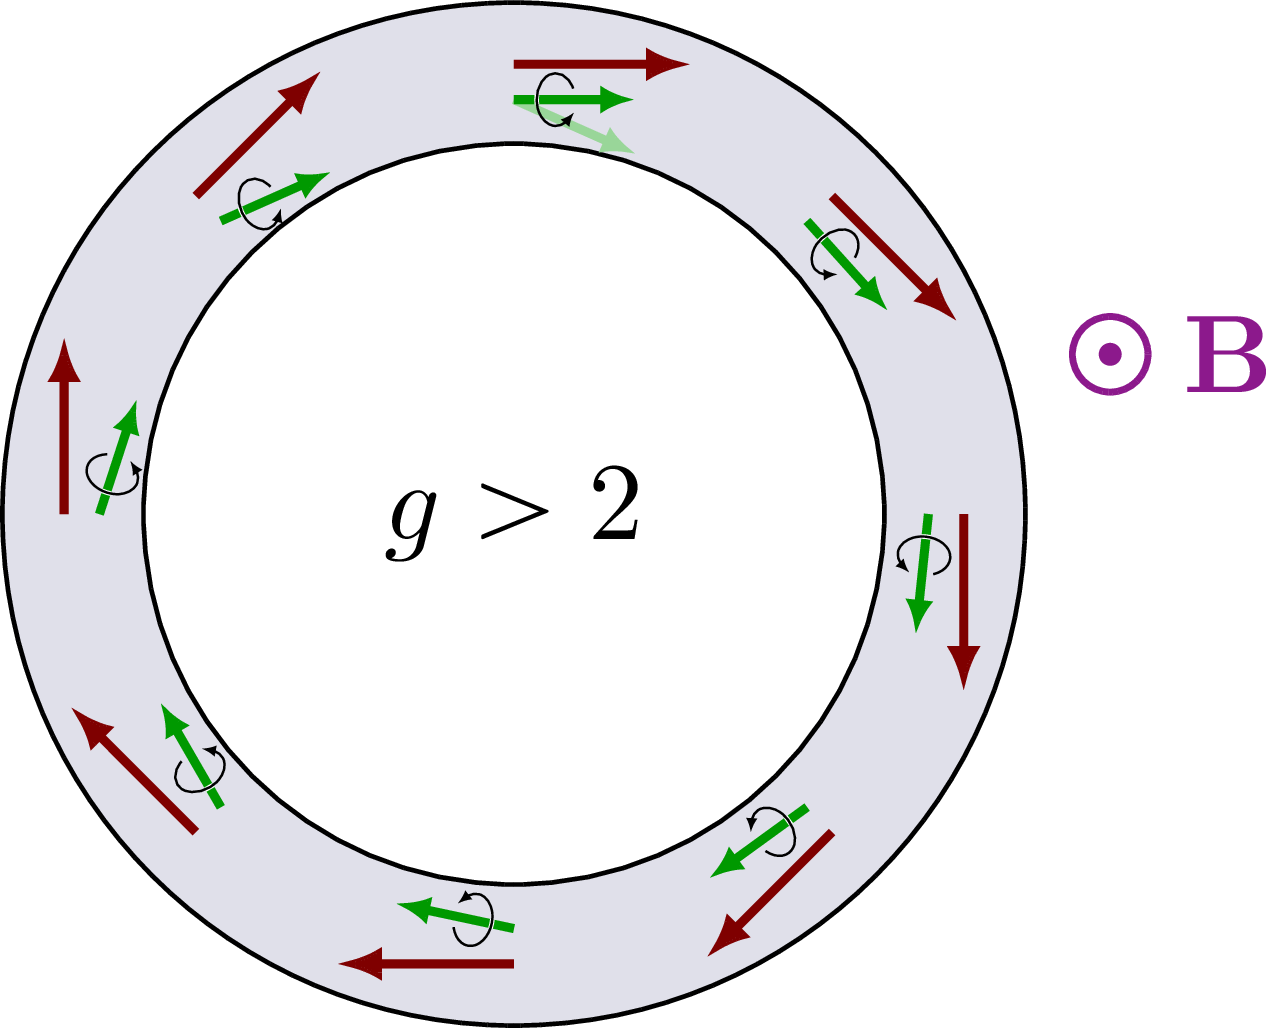 muon_g-2-004.png